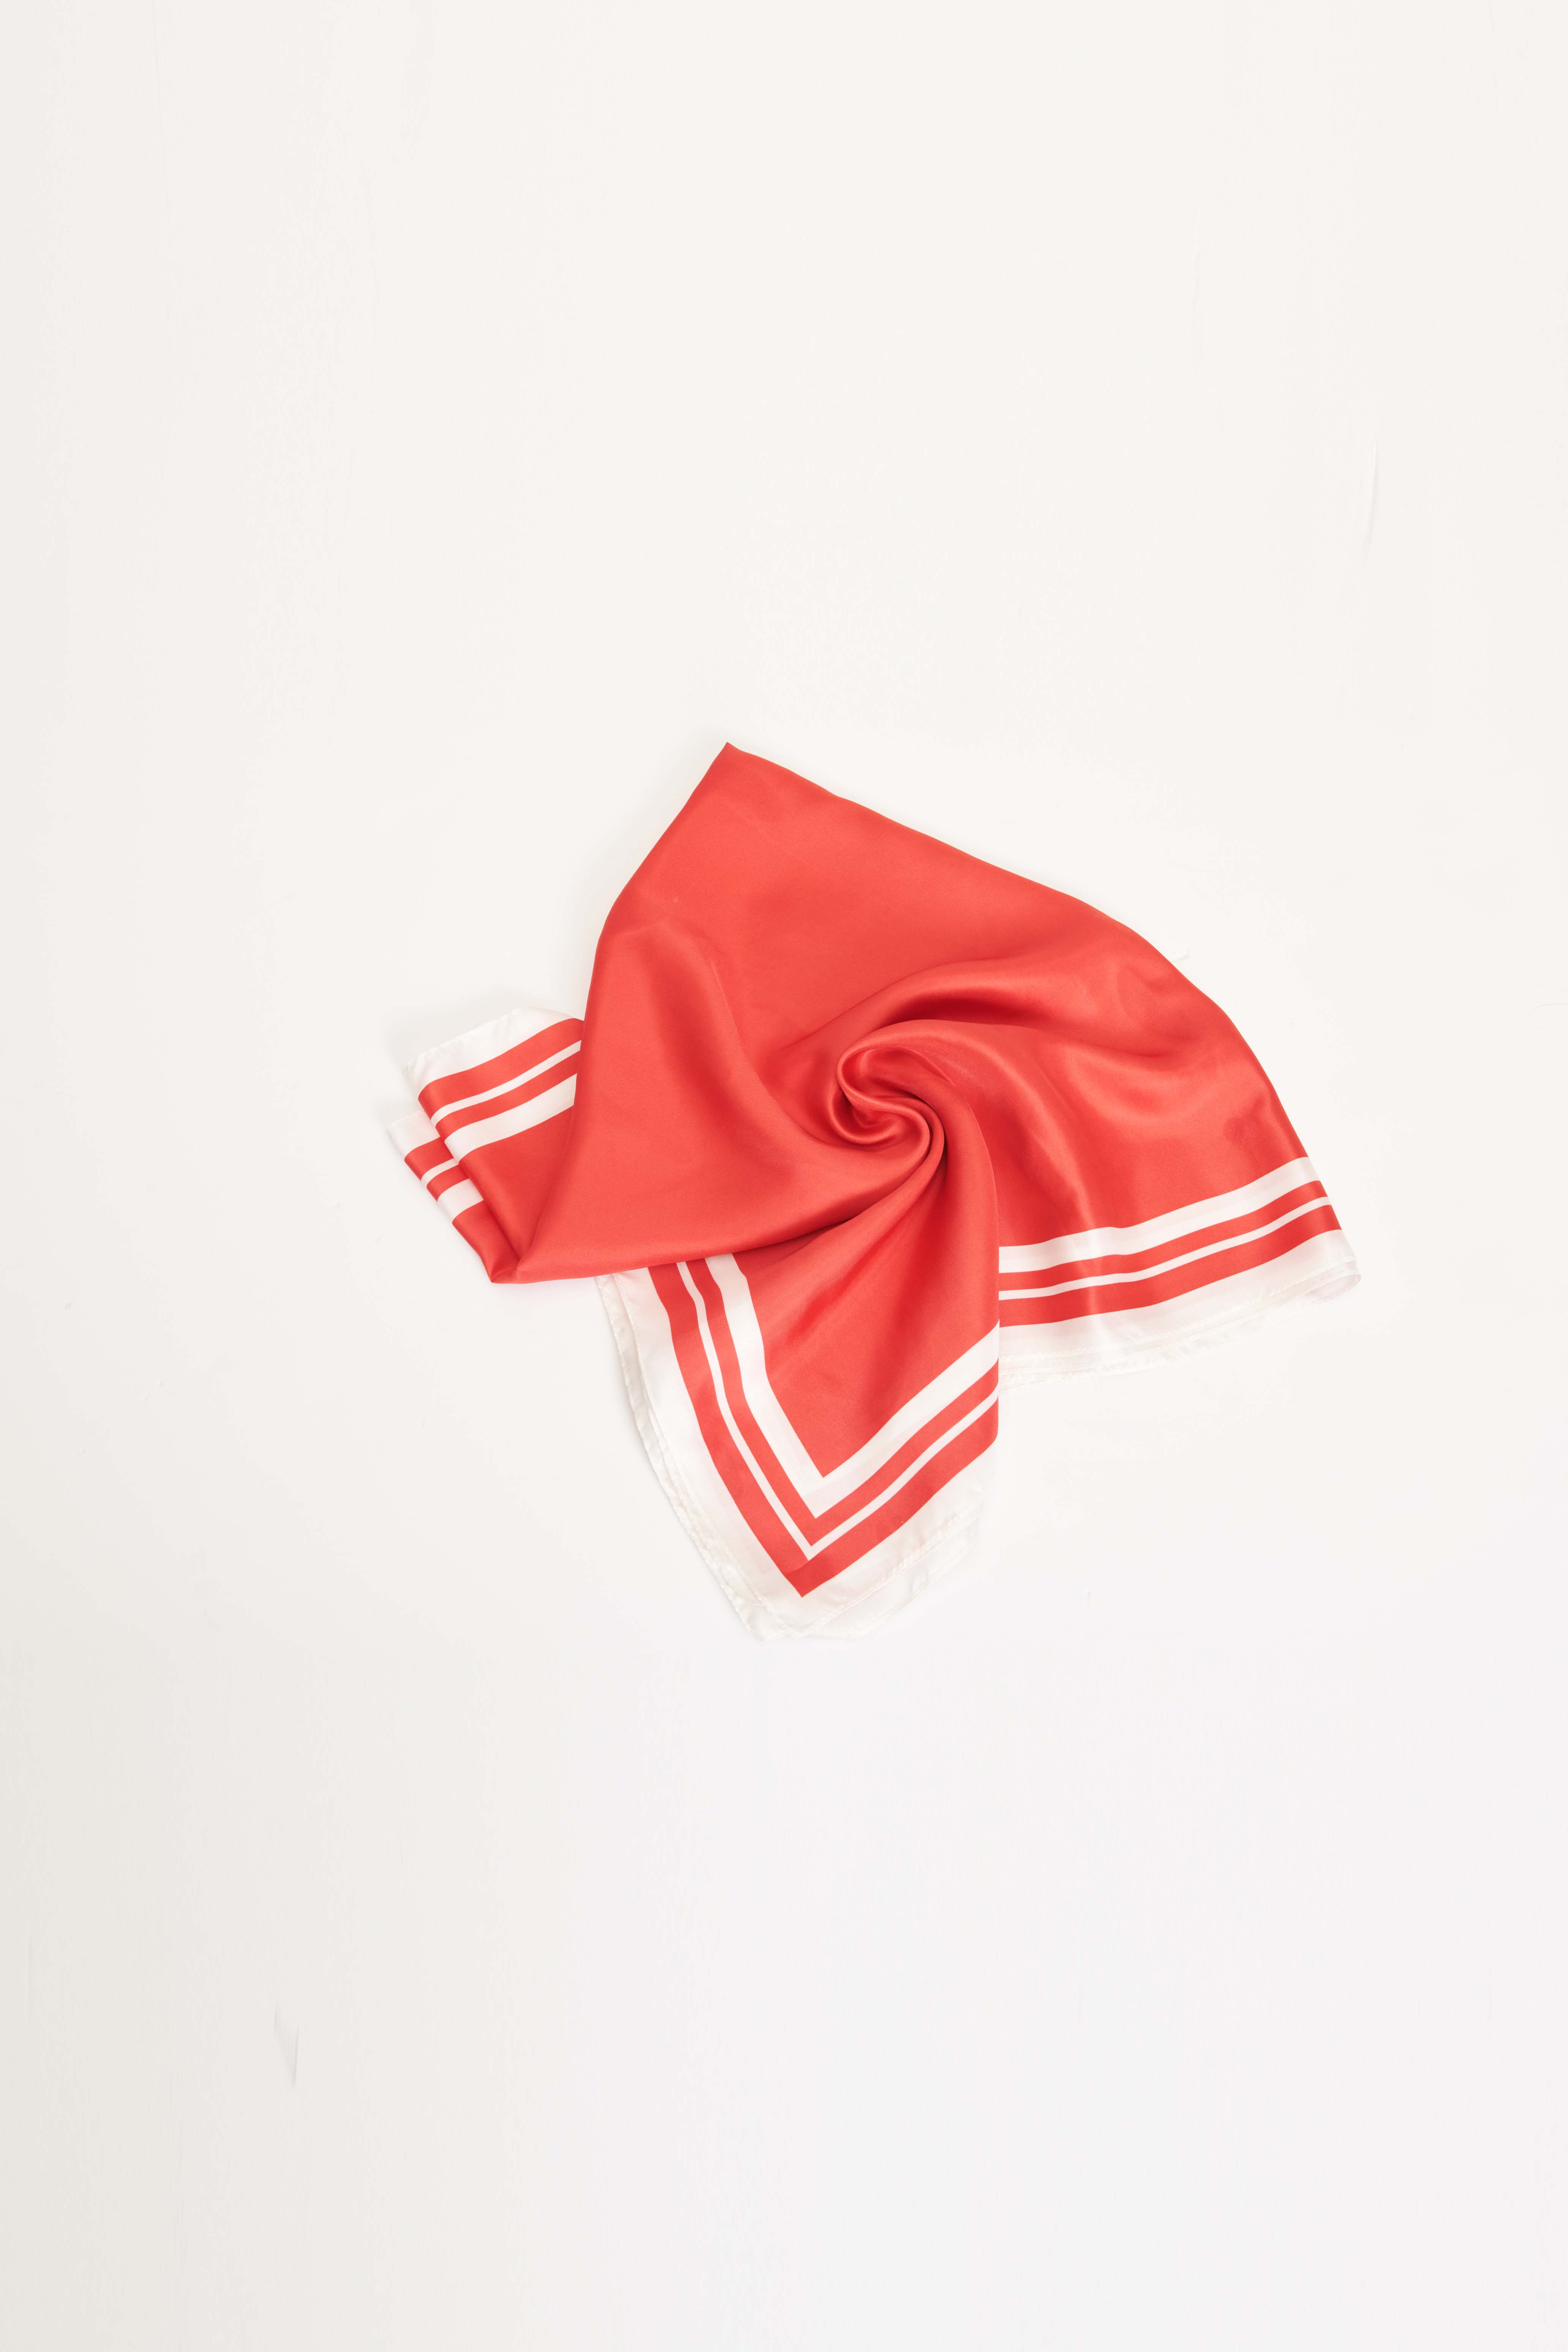 FW21 RED PRINTED SILK SCARF